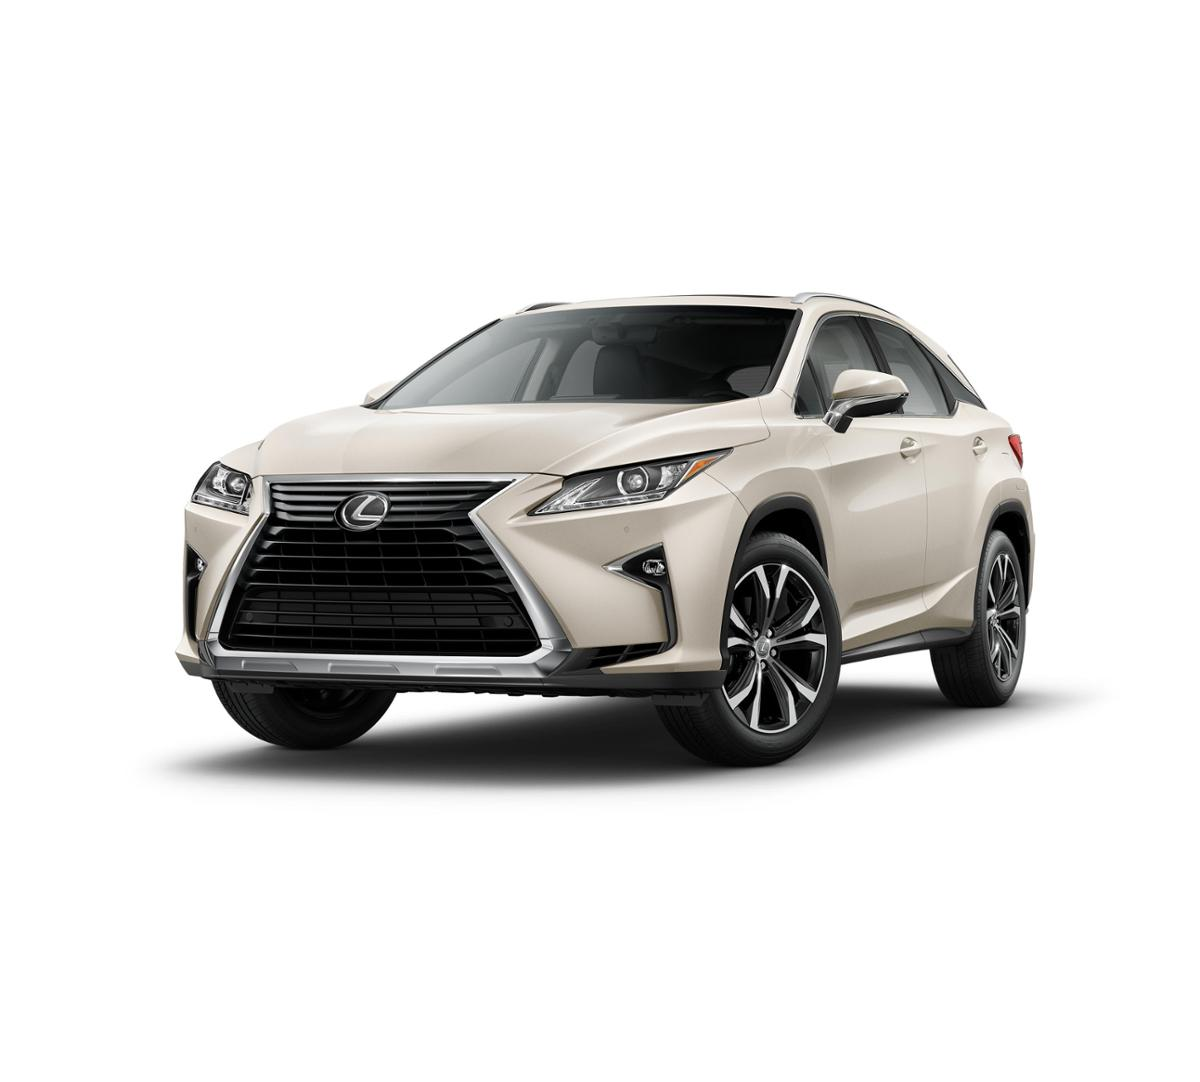 2017 Lexus RX 350 Vehicle Photo in Modesto, CA 95356